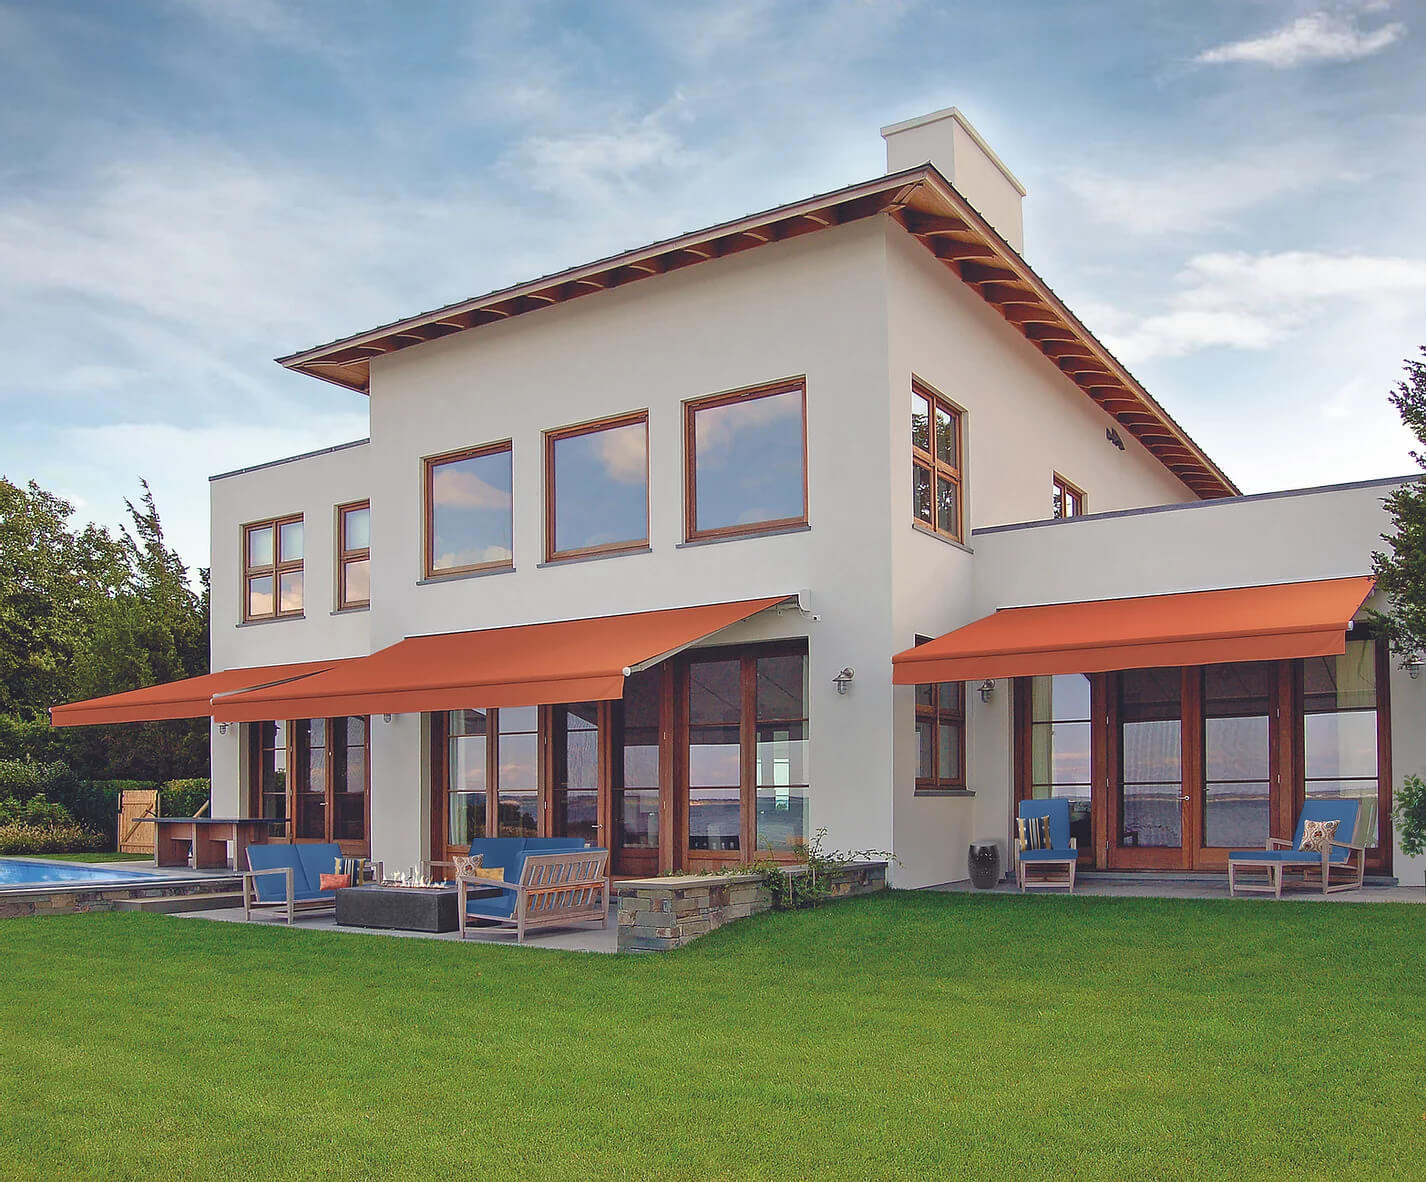 residential awning - sun control solutions - southwestern home products